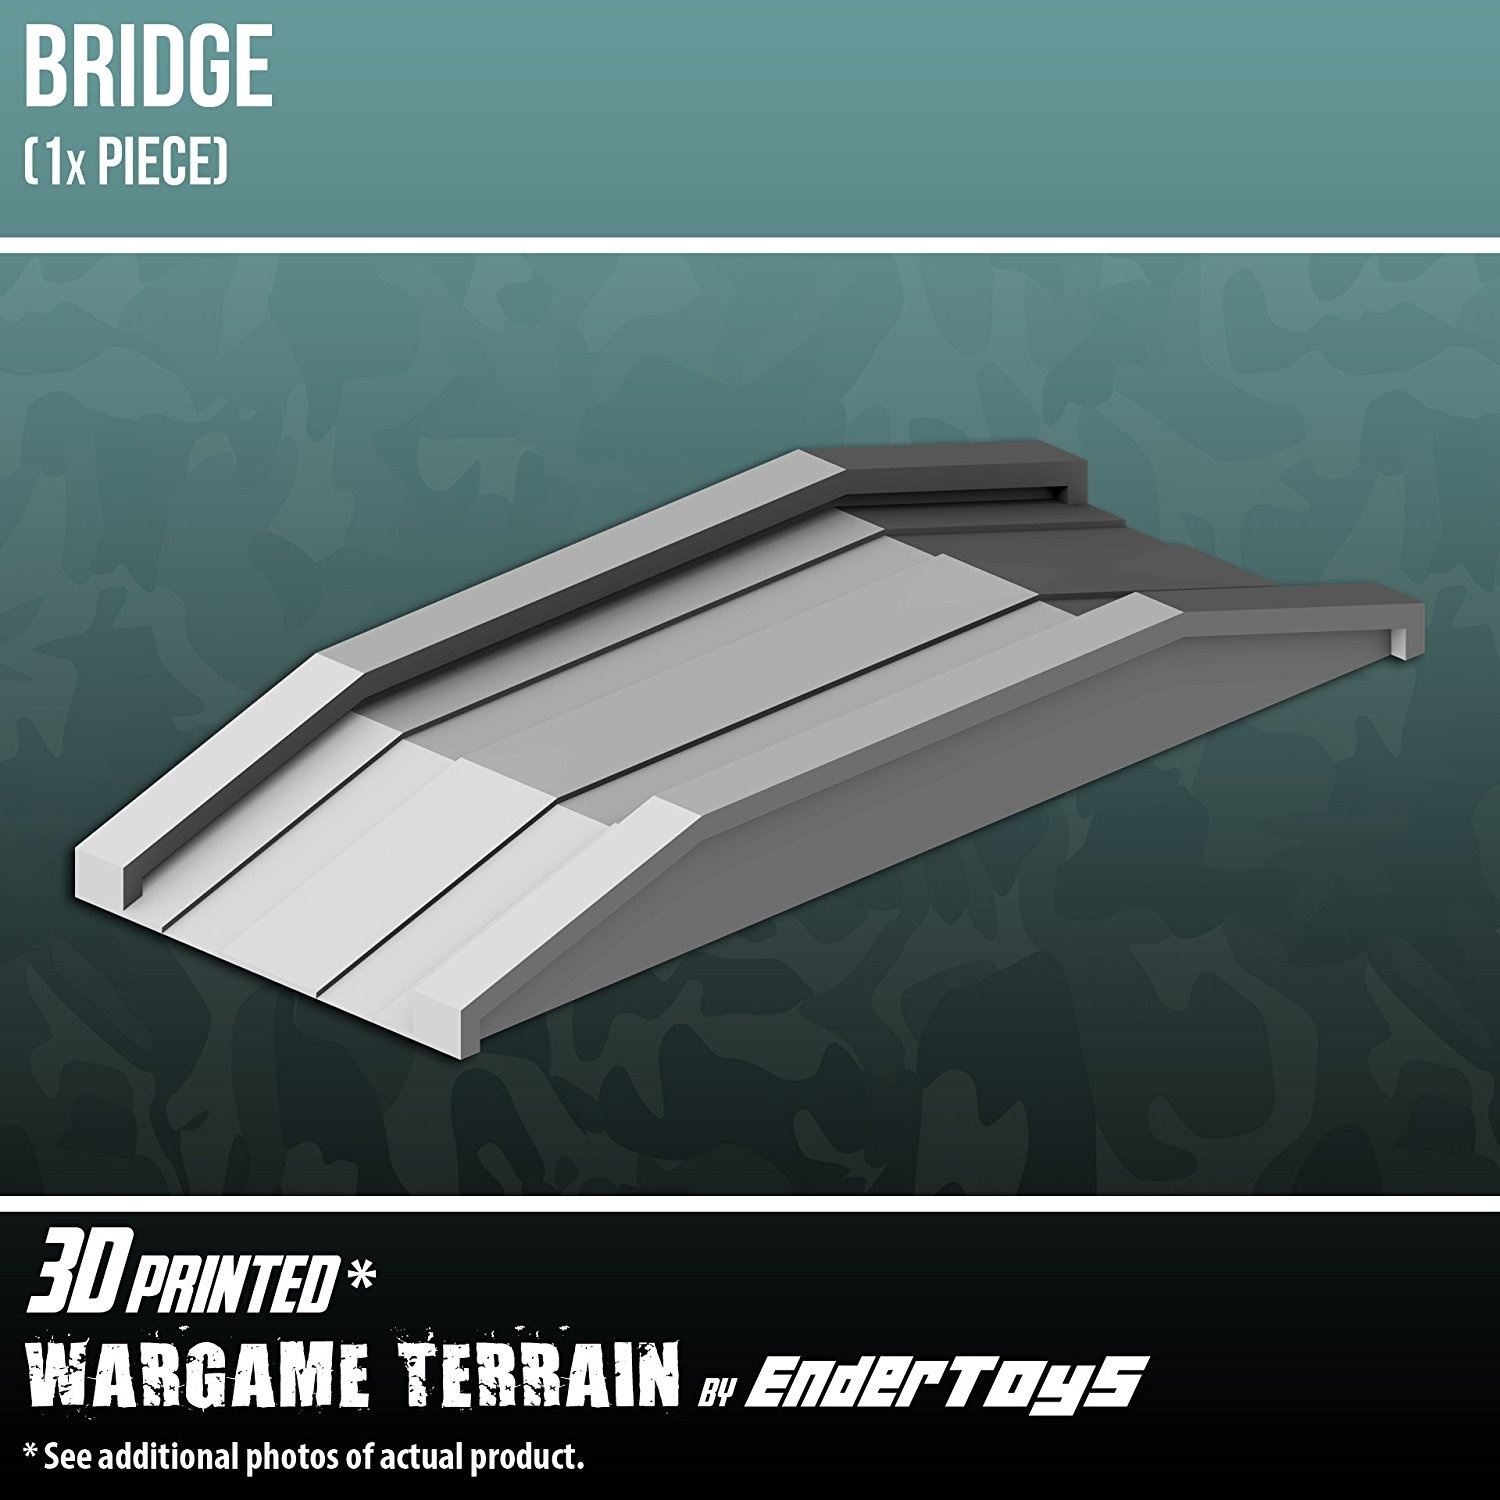 Bridge, Terrain Scenery for Tabletop 28mm Miniatures Wargame, 3D Printed  and Paintable, EnderToys